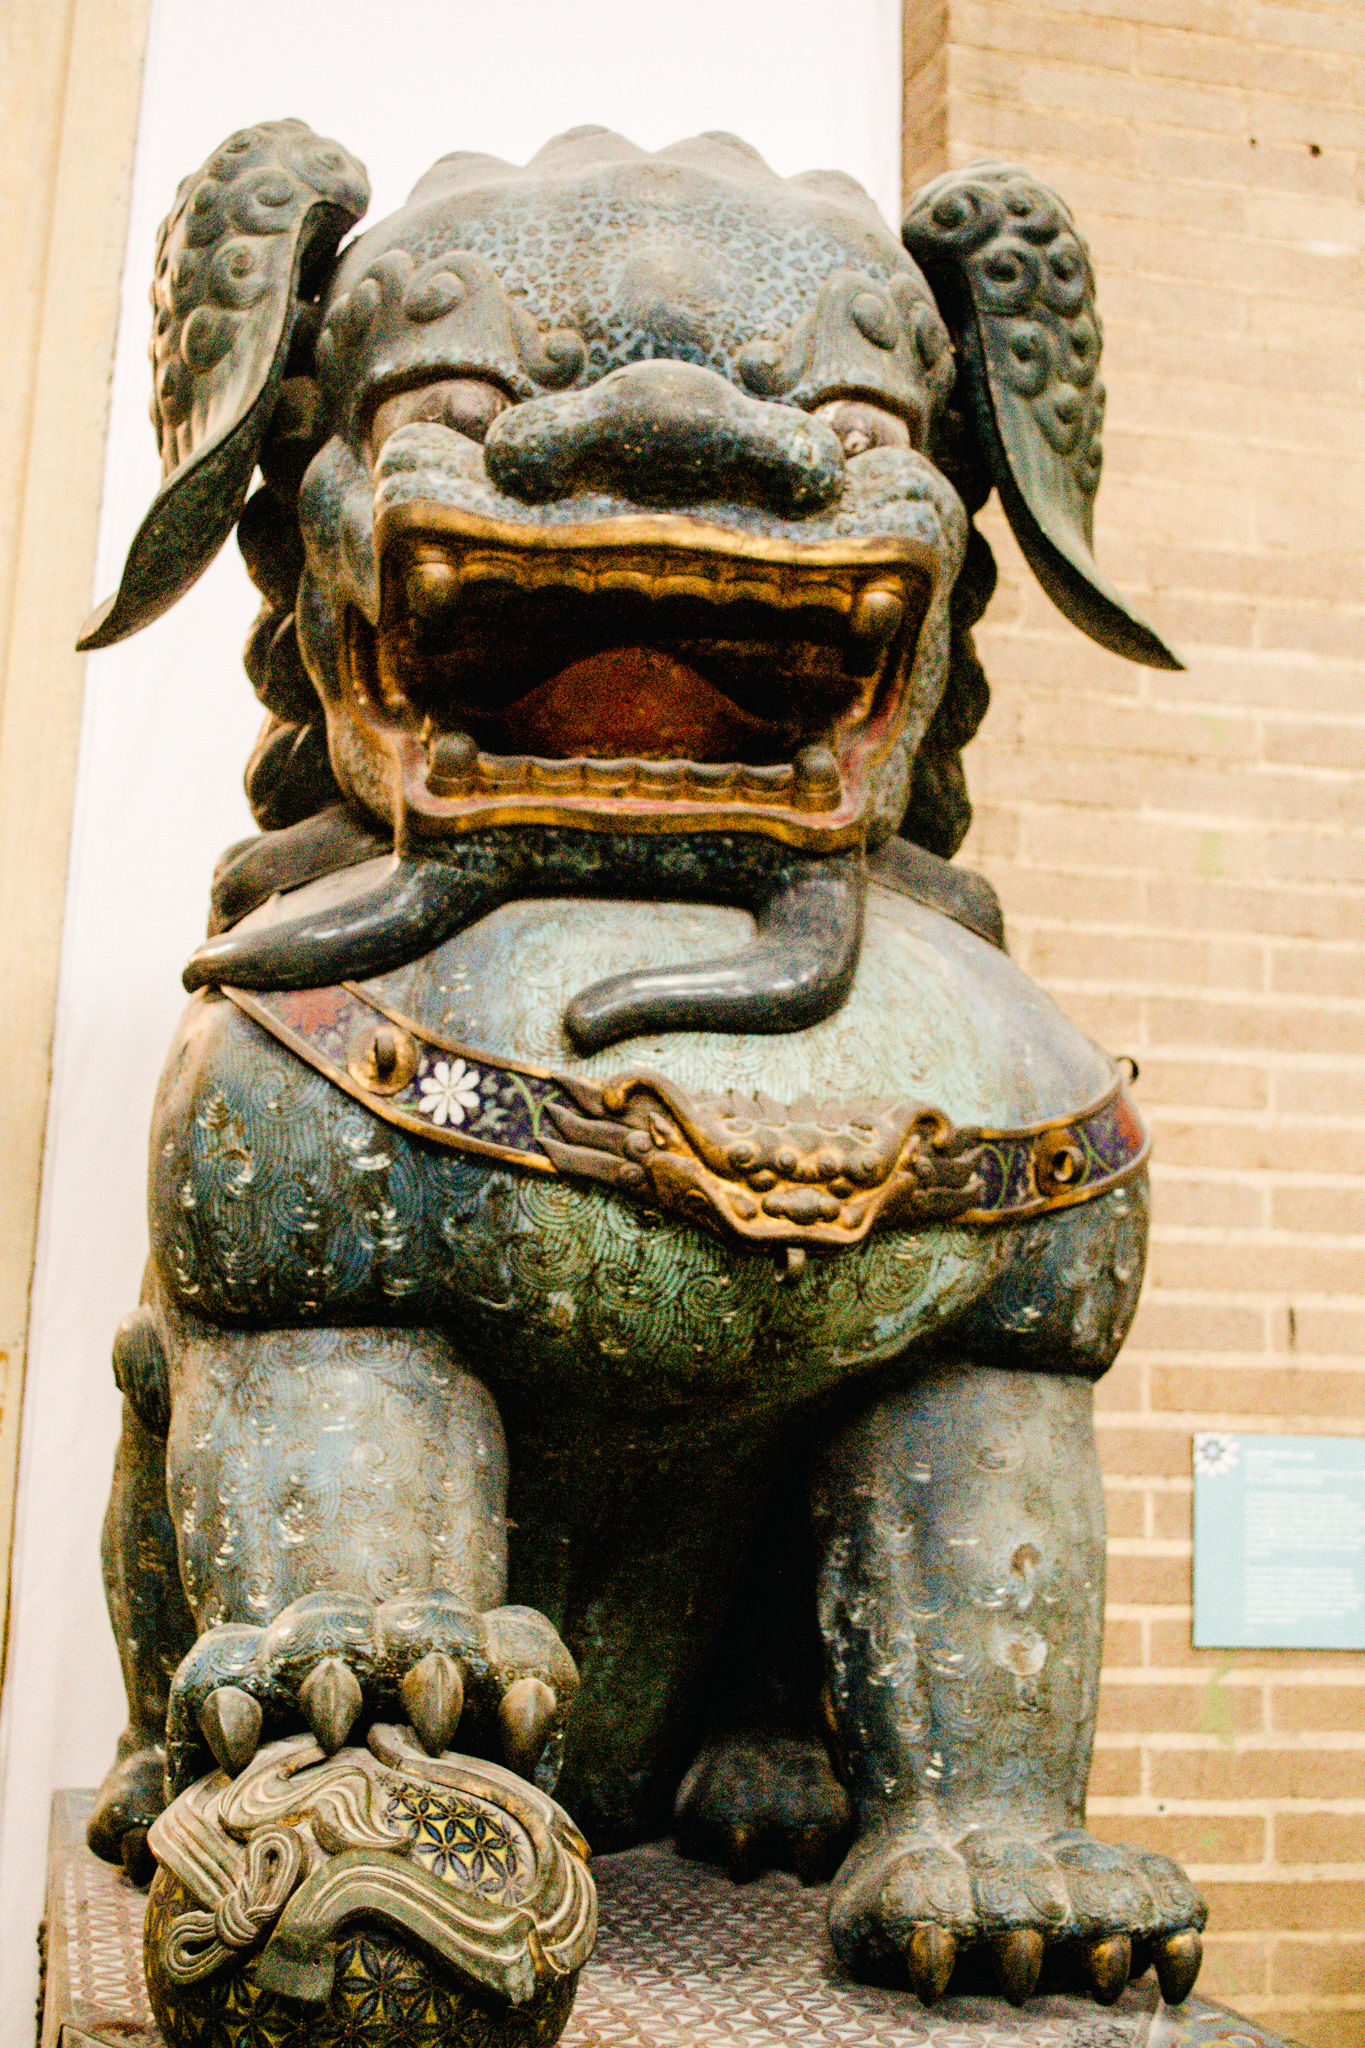 Why You Should Visit the University of Pennsylvania Museum of Archaeology and Anthropology